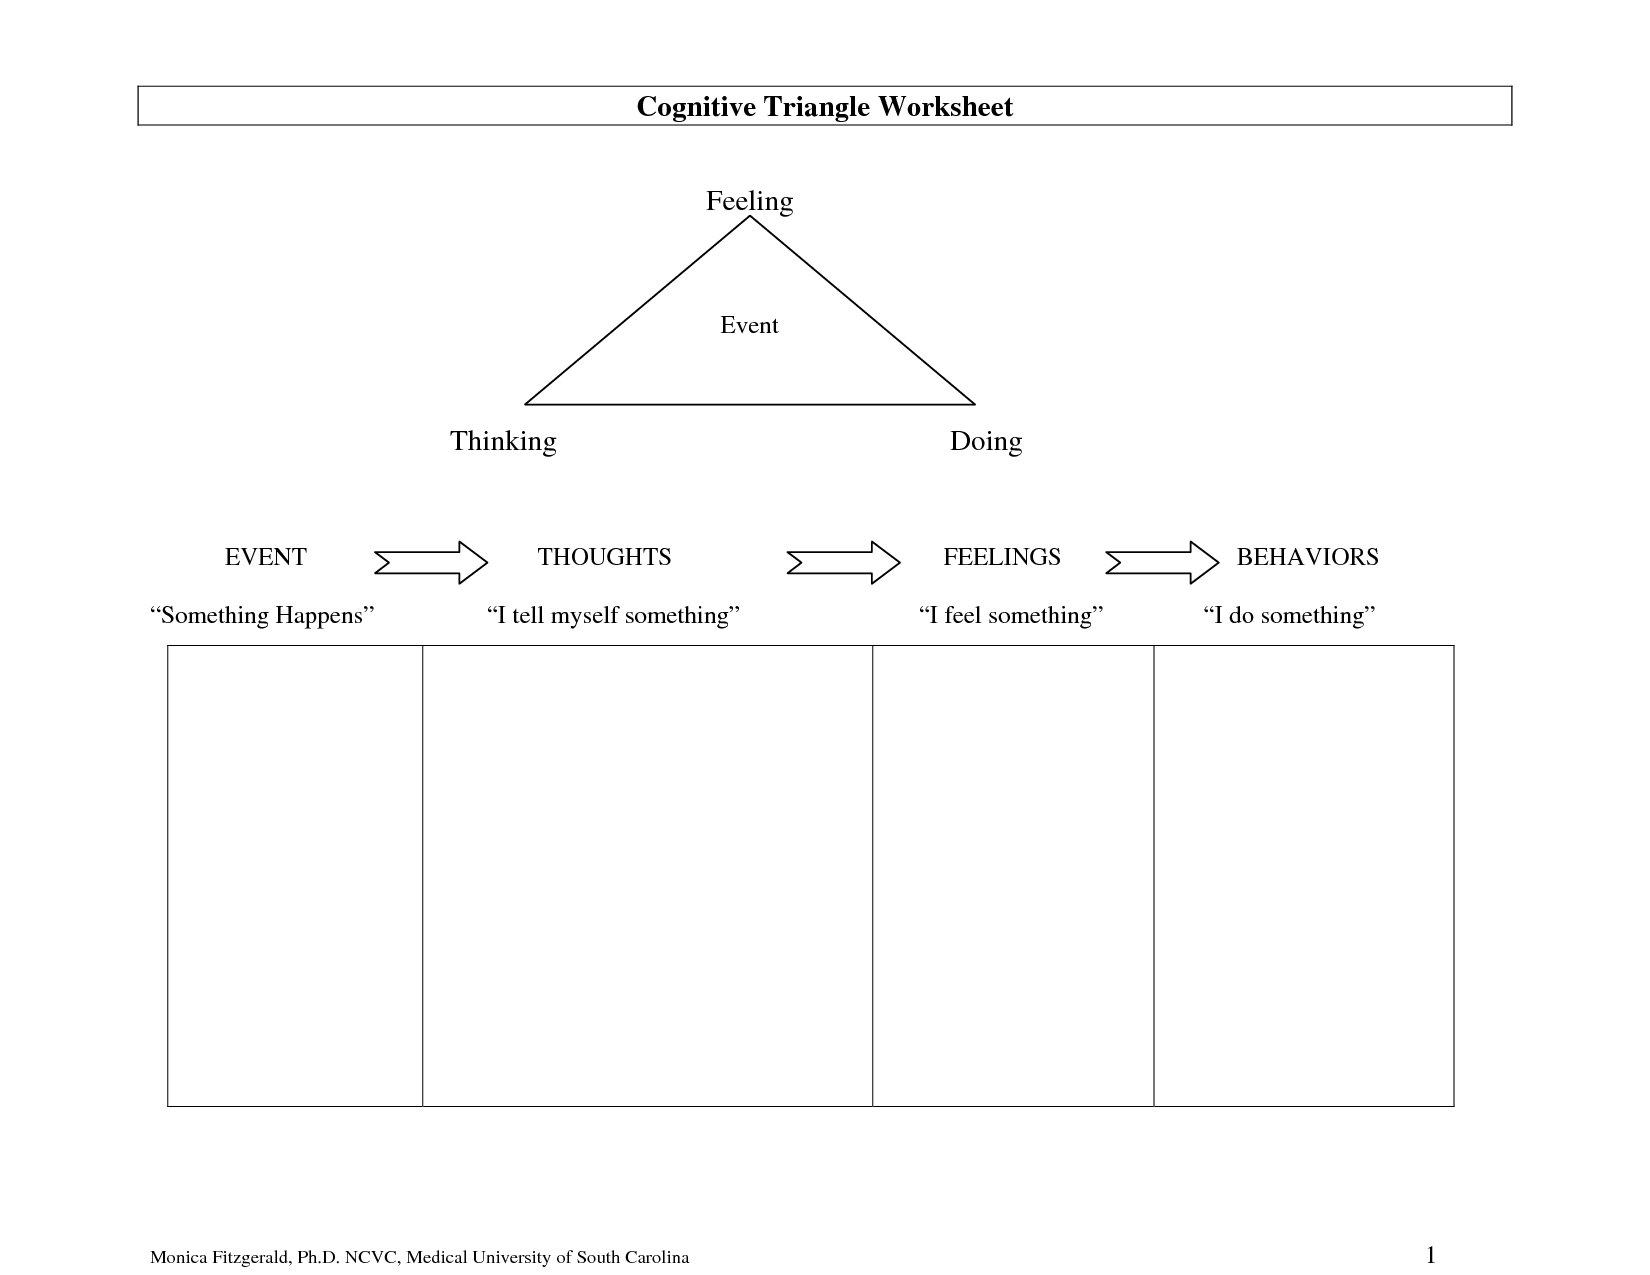 Worksheets Thoughts And Feelings Worksheets full size printable feelings worksheets cognitive triangle worksheet feeling thinking doing